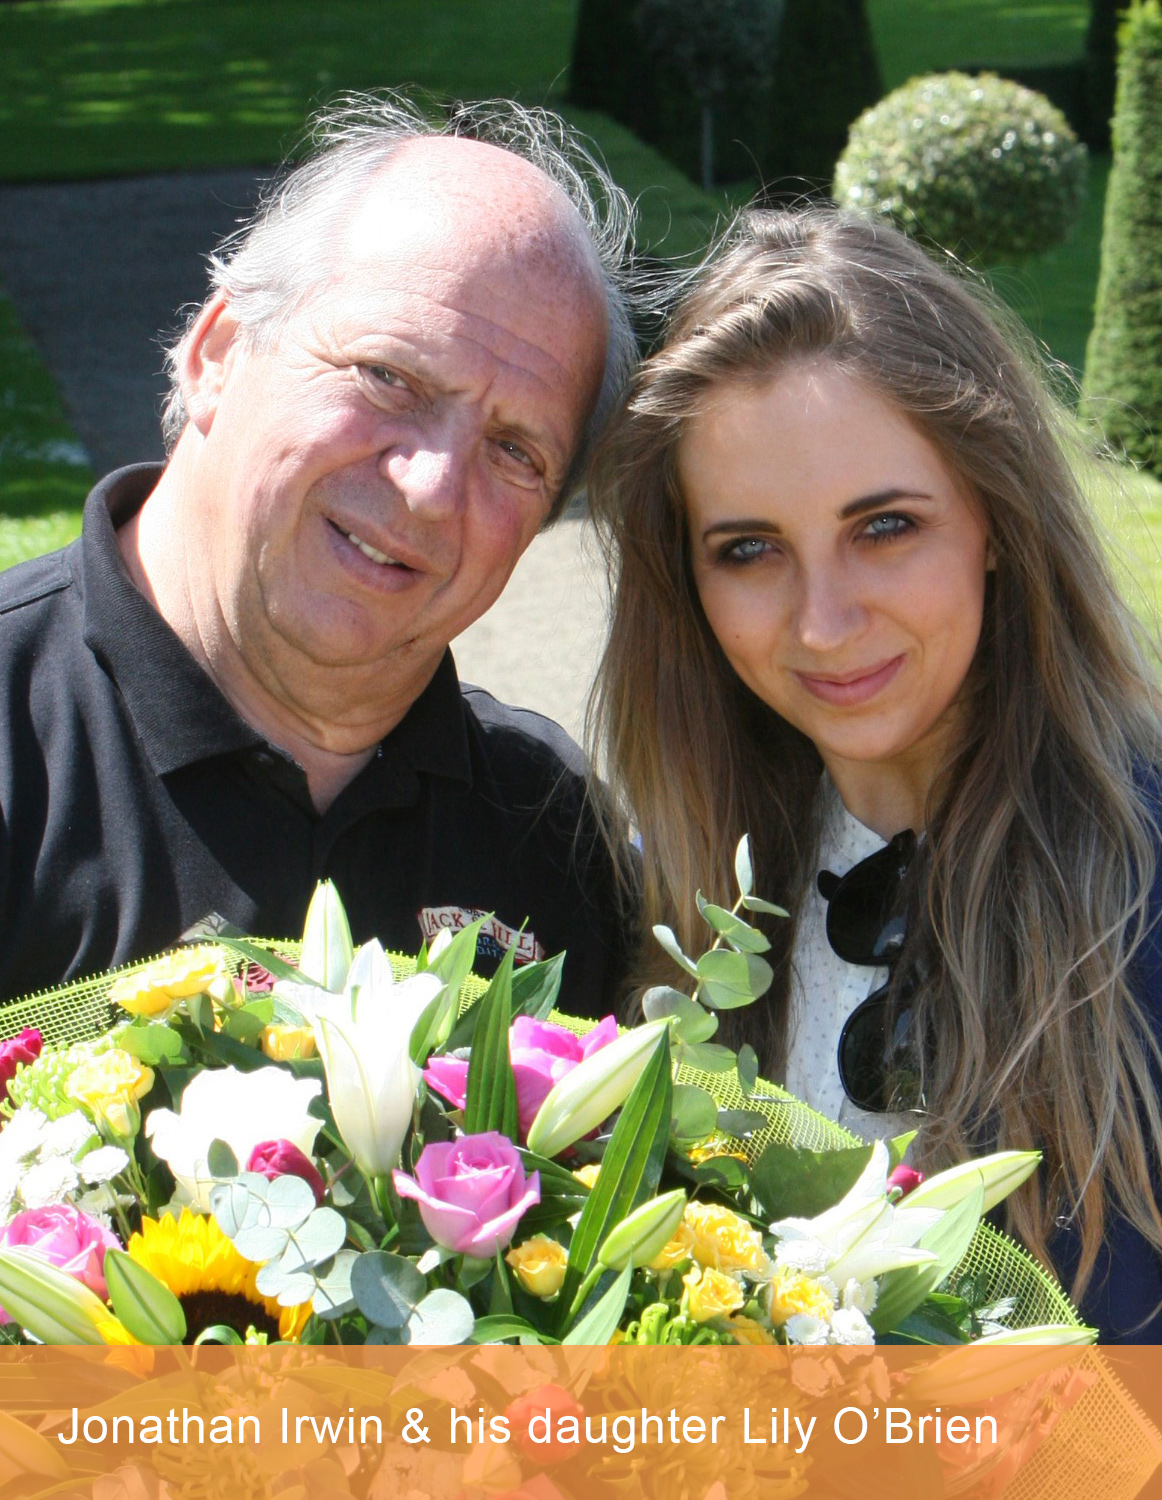 Jonathan Irwin and his daughter Lily O'Brien